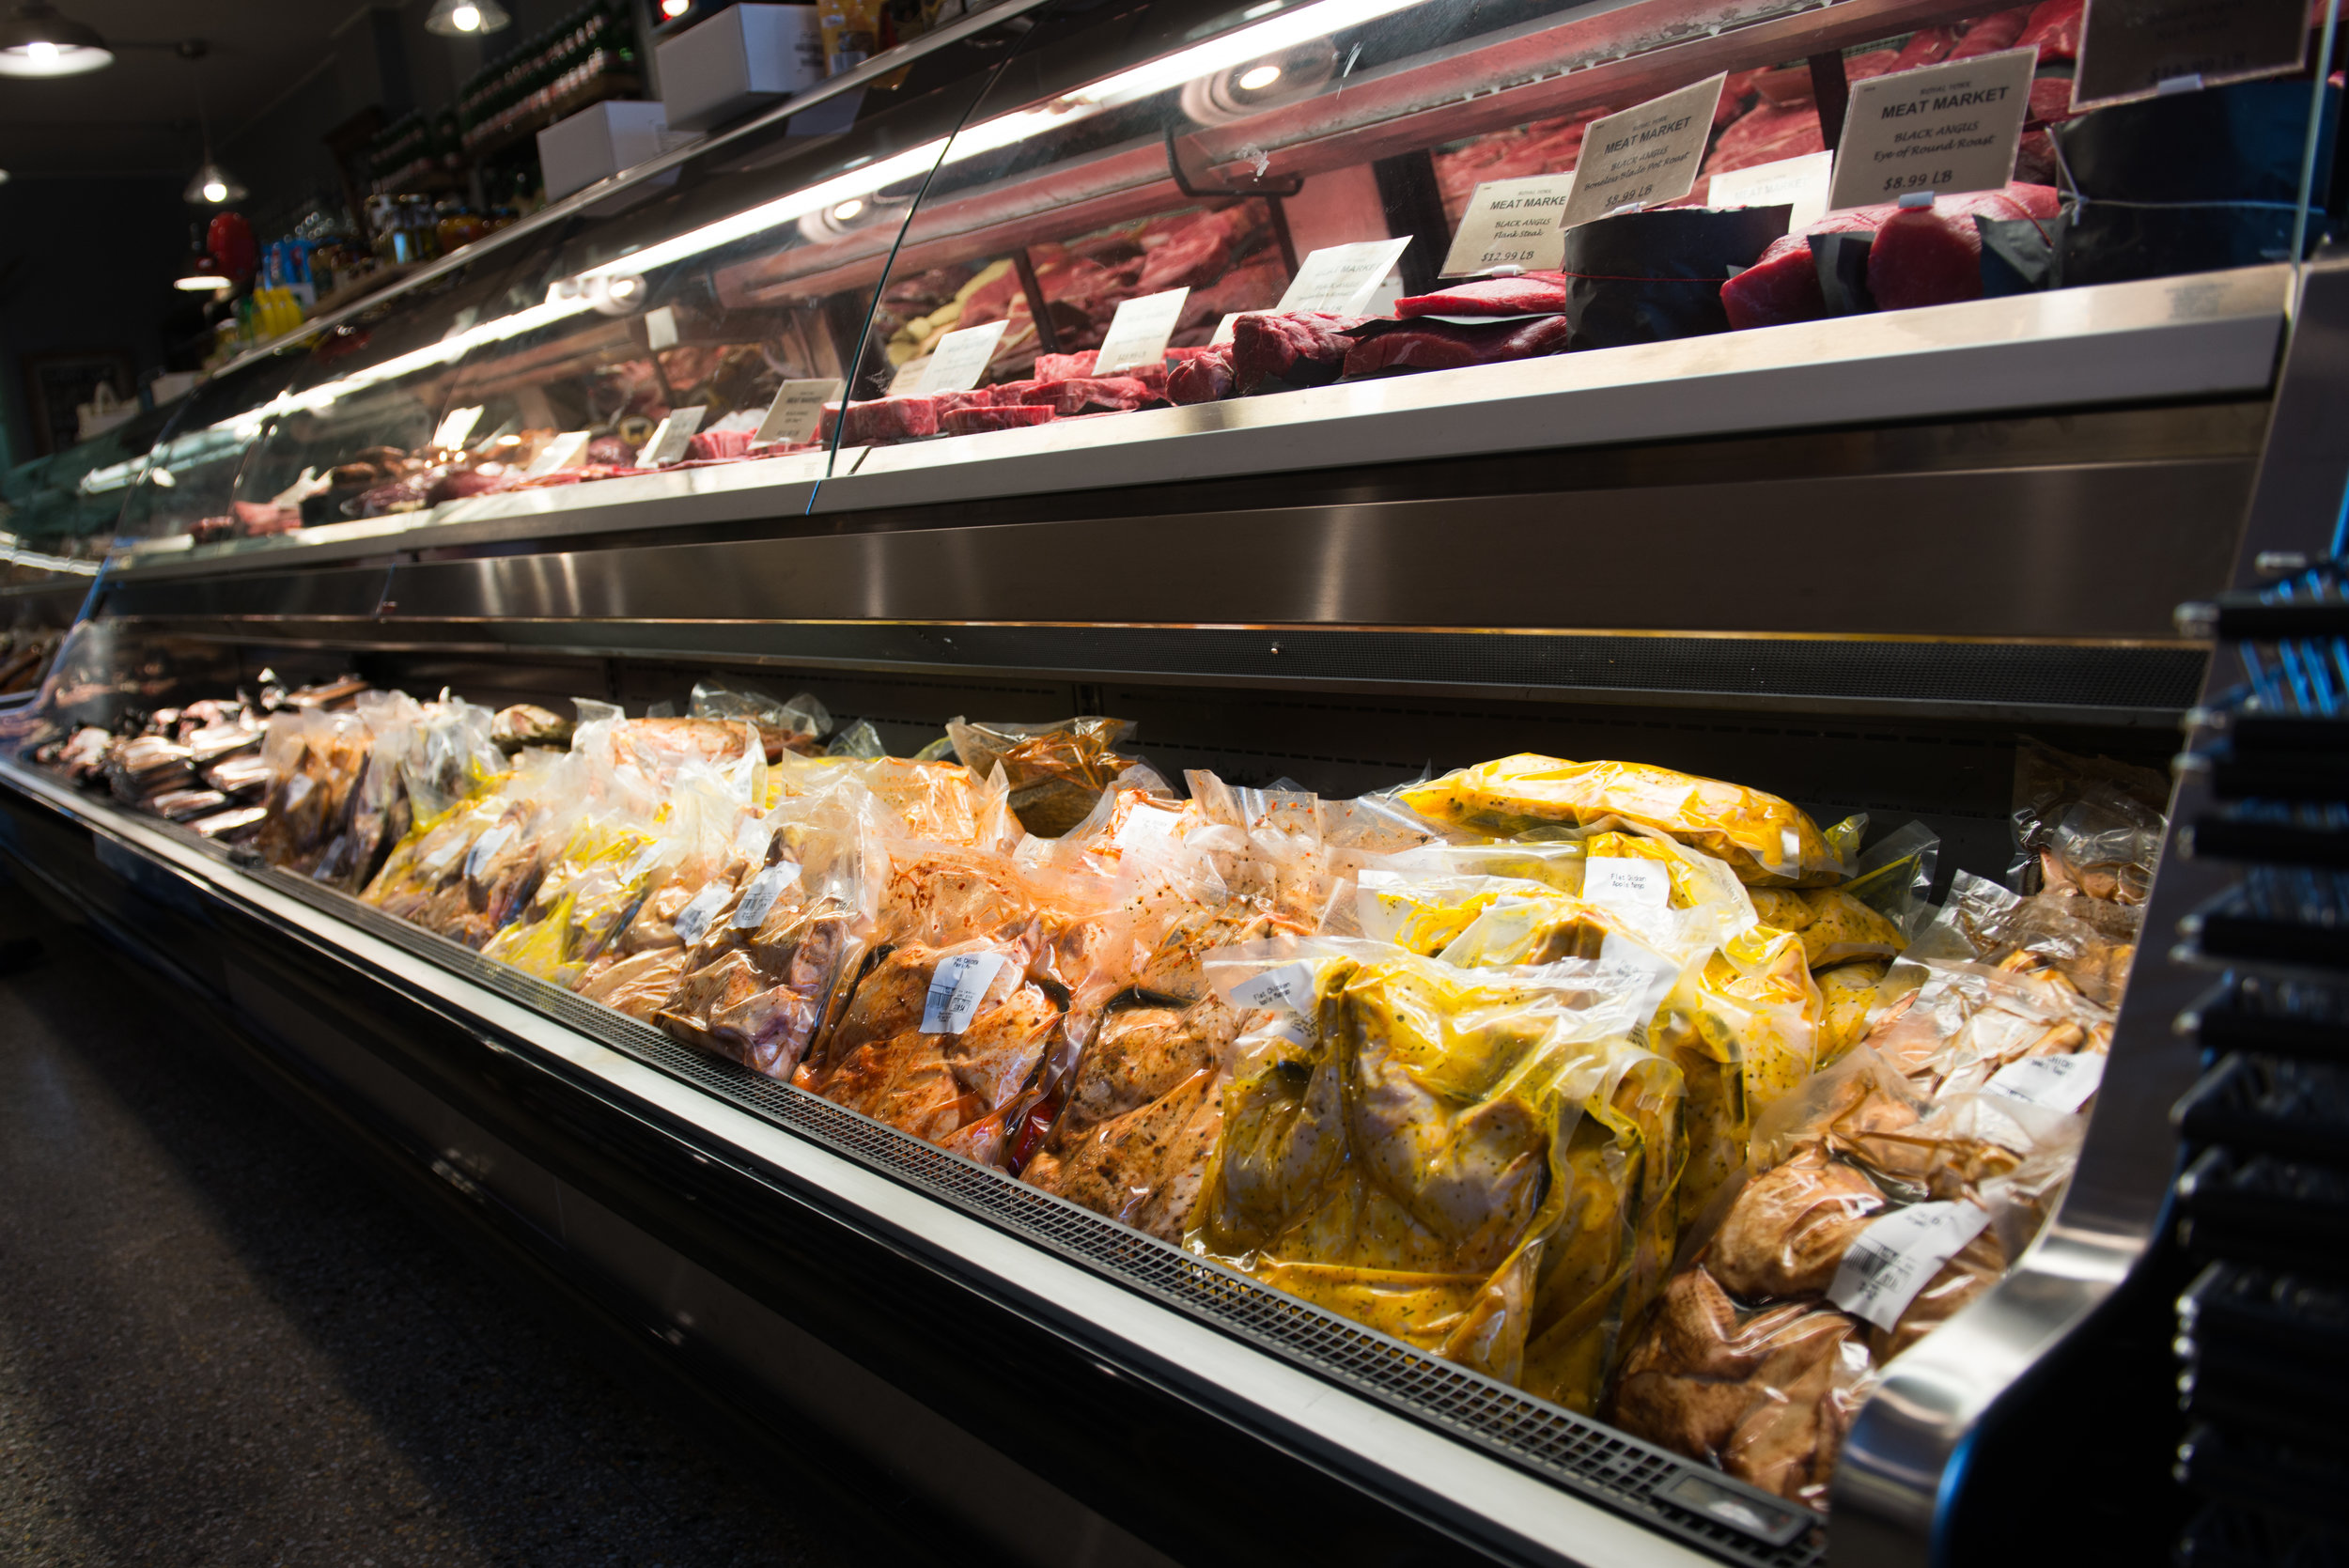 Our fresh Ontario grown chickens come in a variety of flavors. From sweet to spicy we have you covered, come try out our breast, thighs, wings, kabobs, legs and flattened chickens.